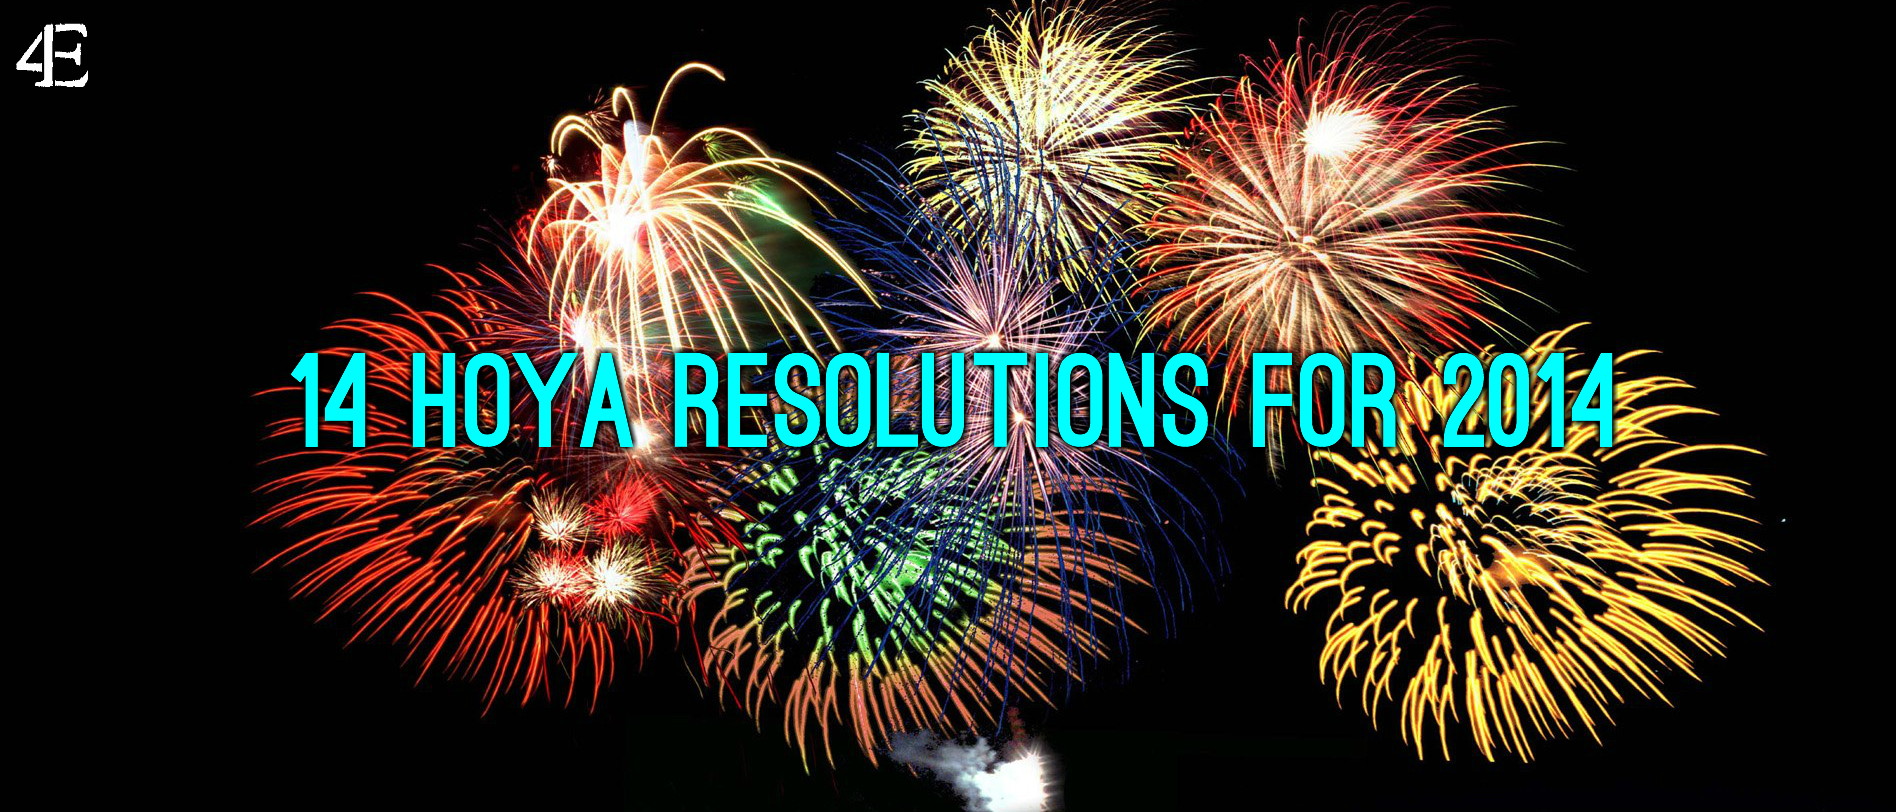 14 Hoya Resolutions